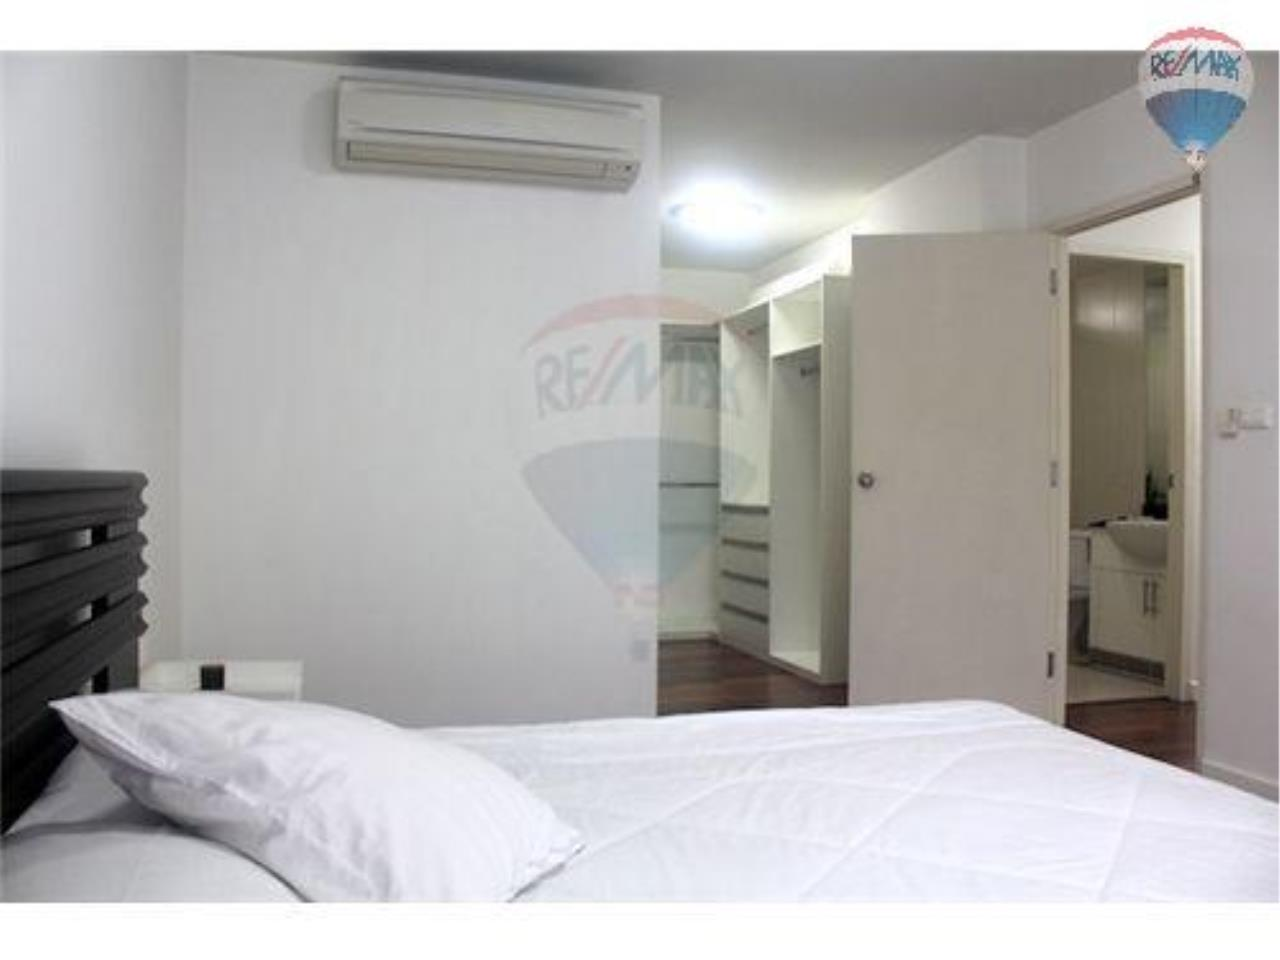 RE/MAX Properties Agency's 2 Bedroom Apartment- Sukhumvit Soi 49 12